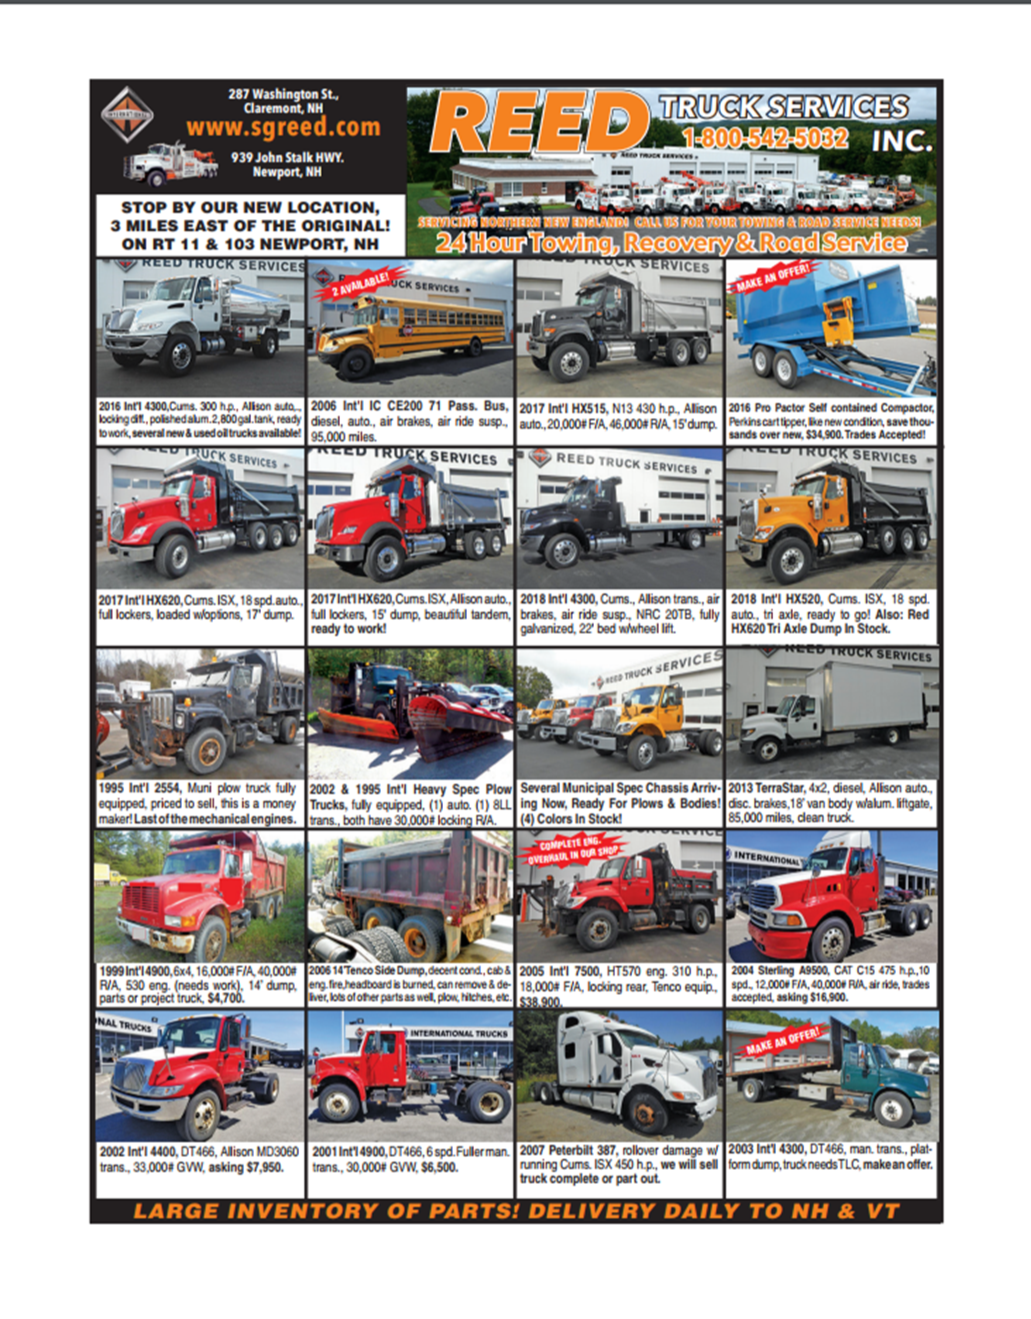 Reed Truck Services Flier August 2017